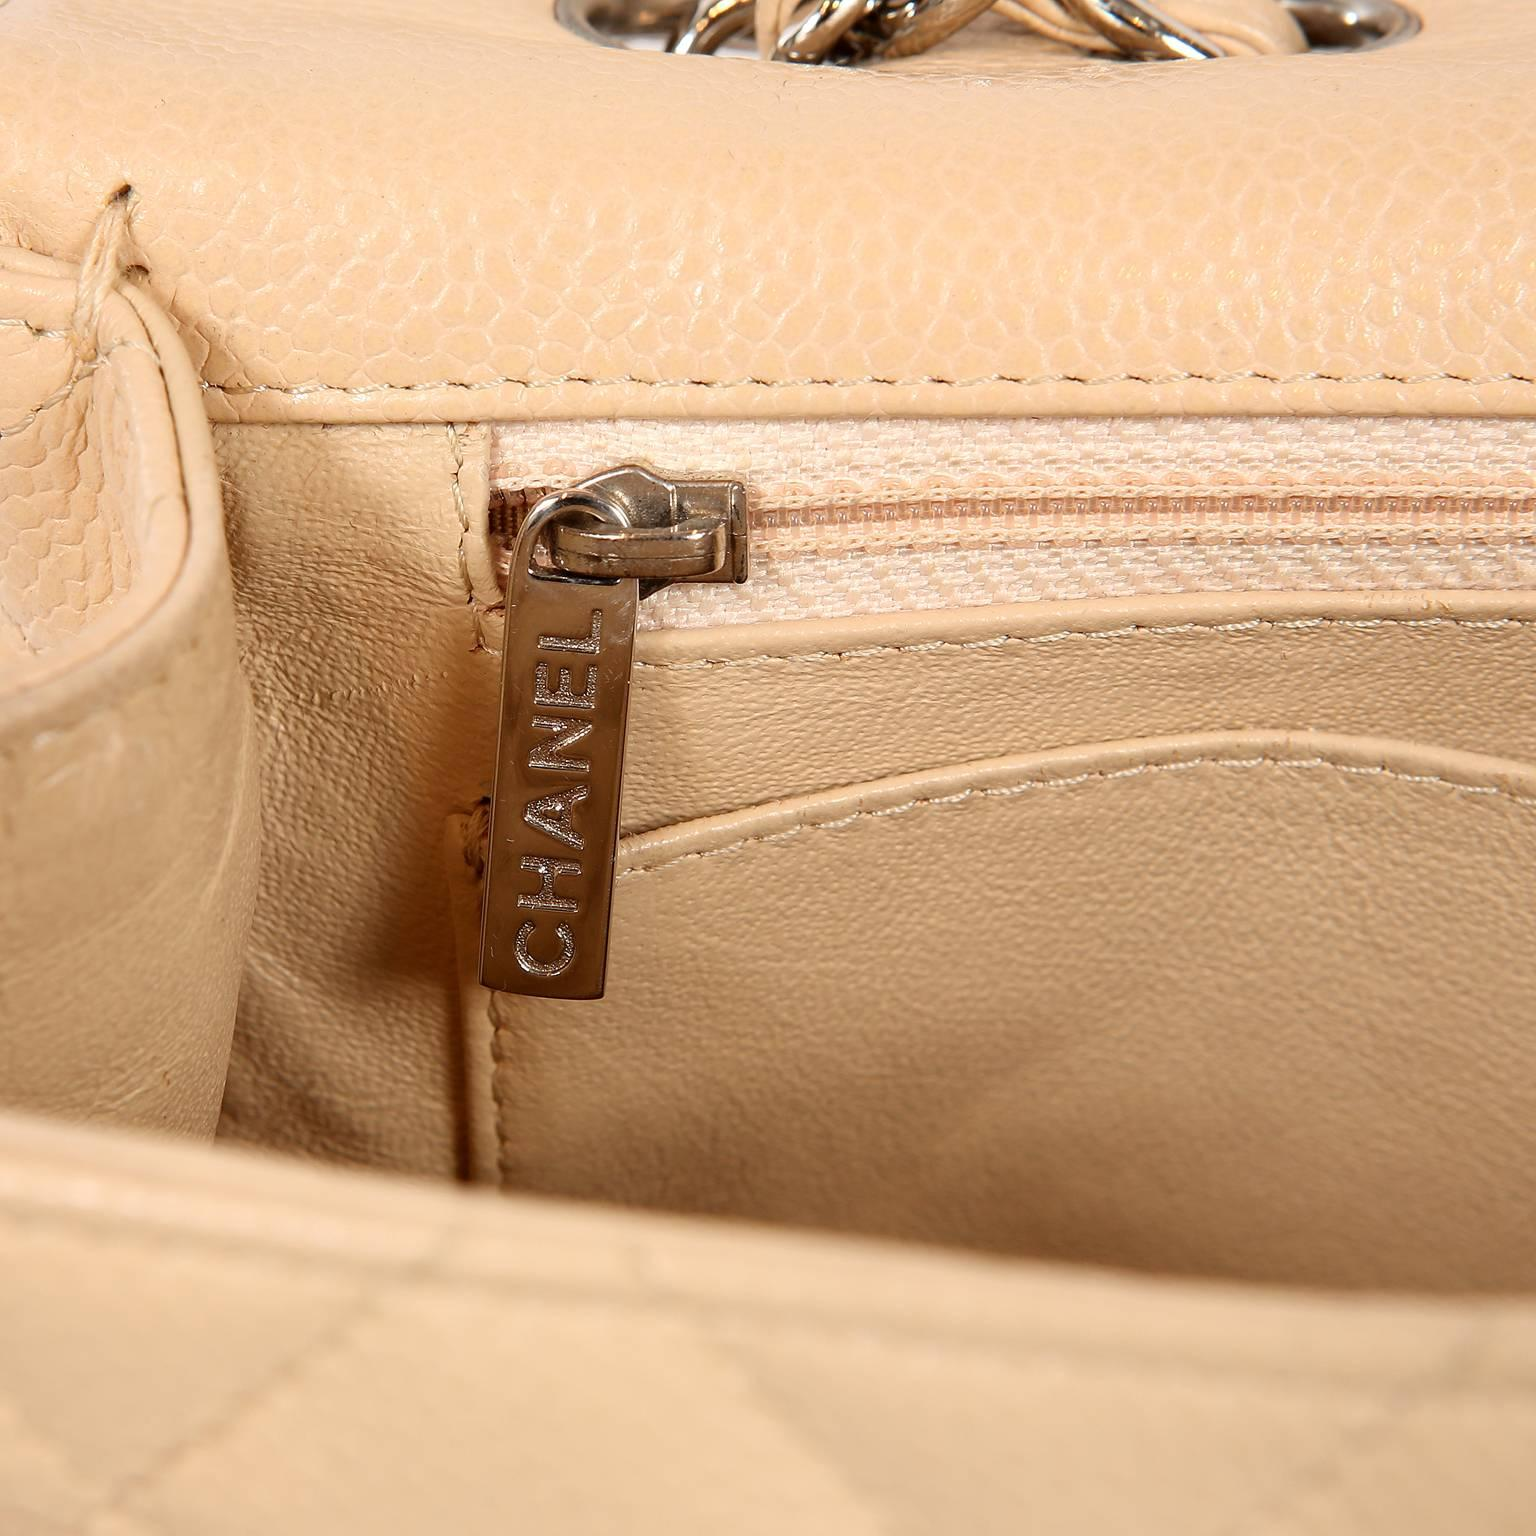 b72cf0669c2c Chanel Beige Clair Caviar Leather Jumbo Classic Flap Bag with Silver HW at  1stdibs